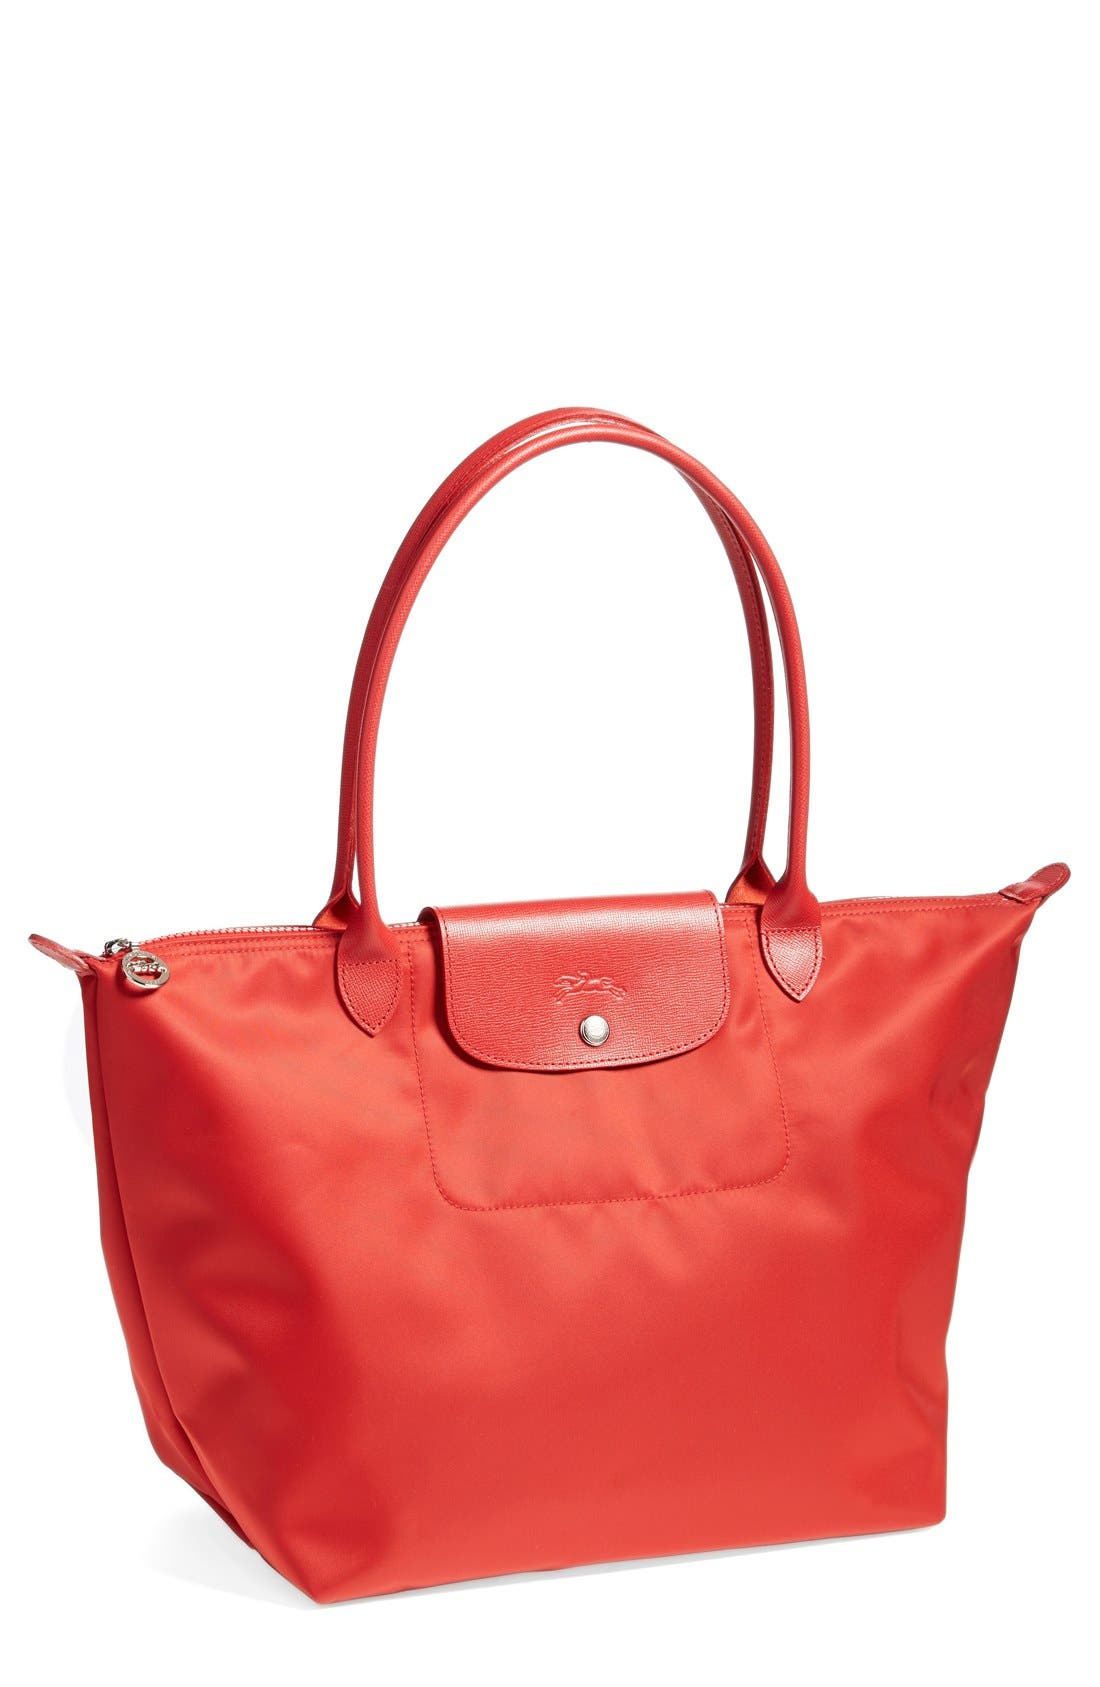 Alternate Image 1 Selected - Longchamp 'Le Pliage Neo - Large' Tote